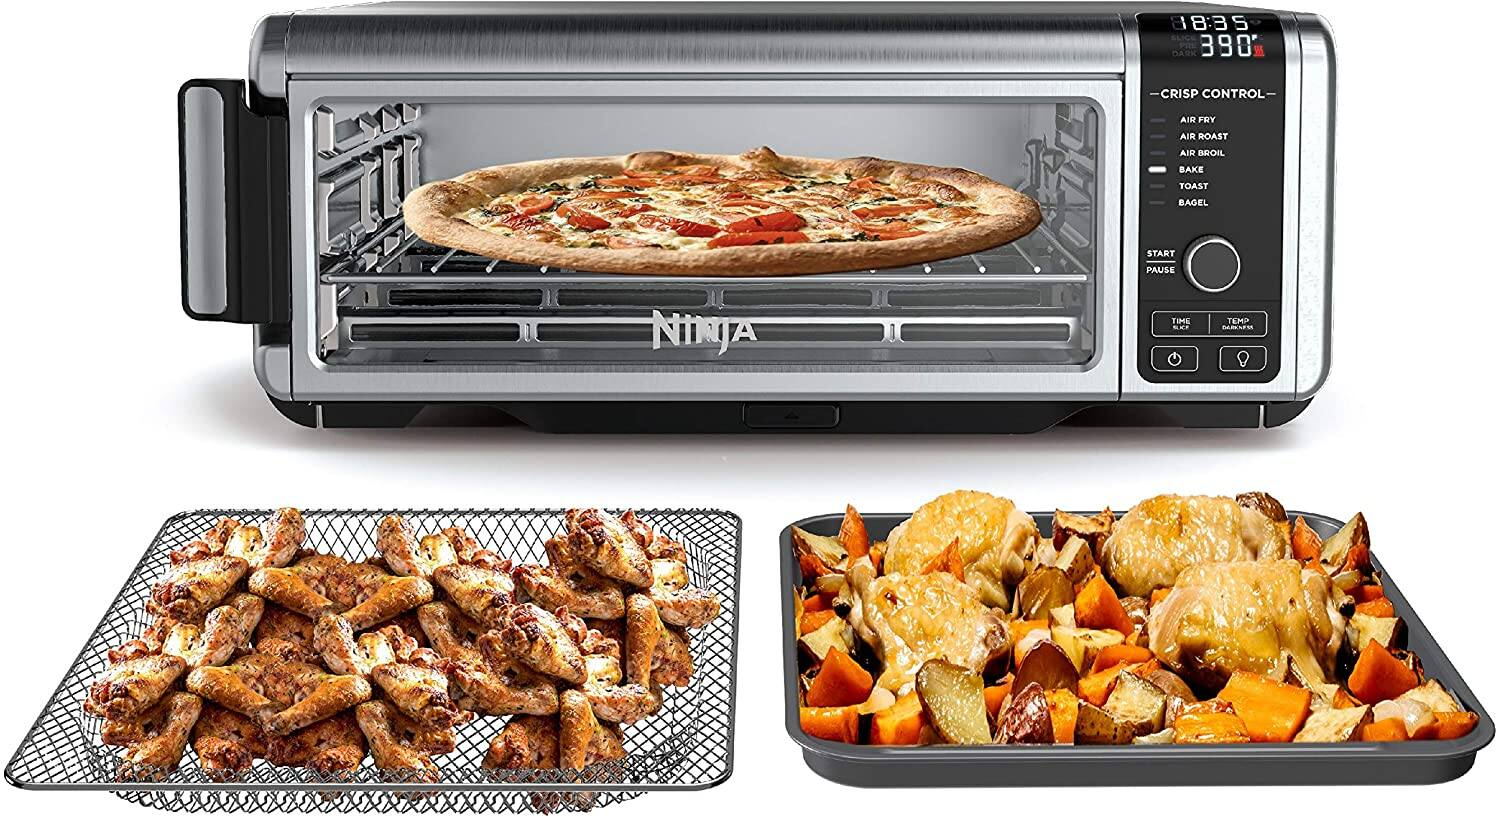 Ninja SP100 6-1 Digital Air Fry Oven with Convection Refurbished Woot.com $119.99 Shipped if Prime Member